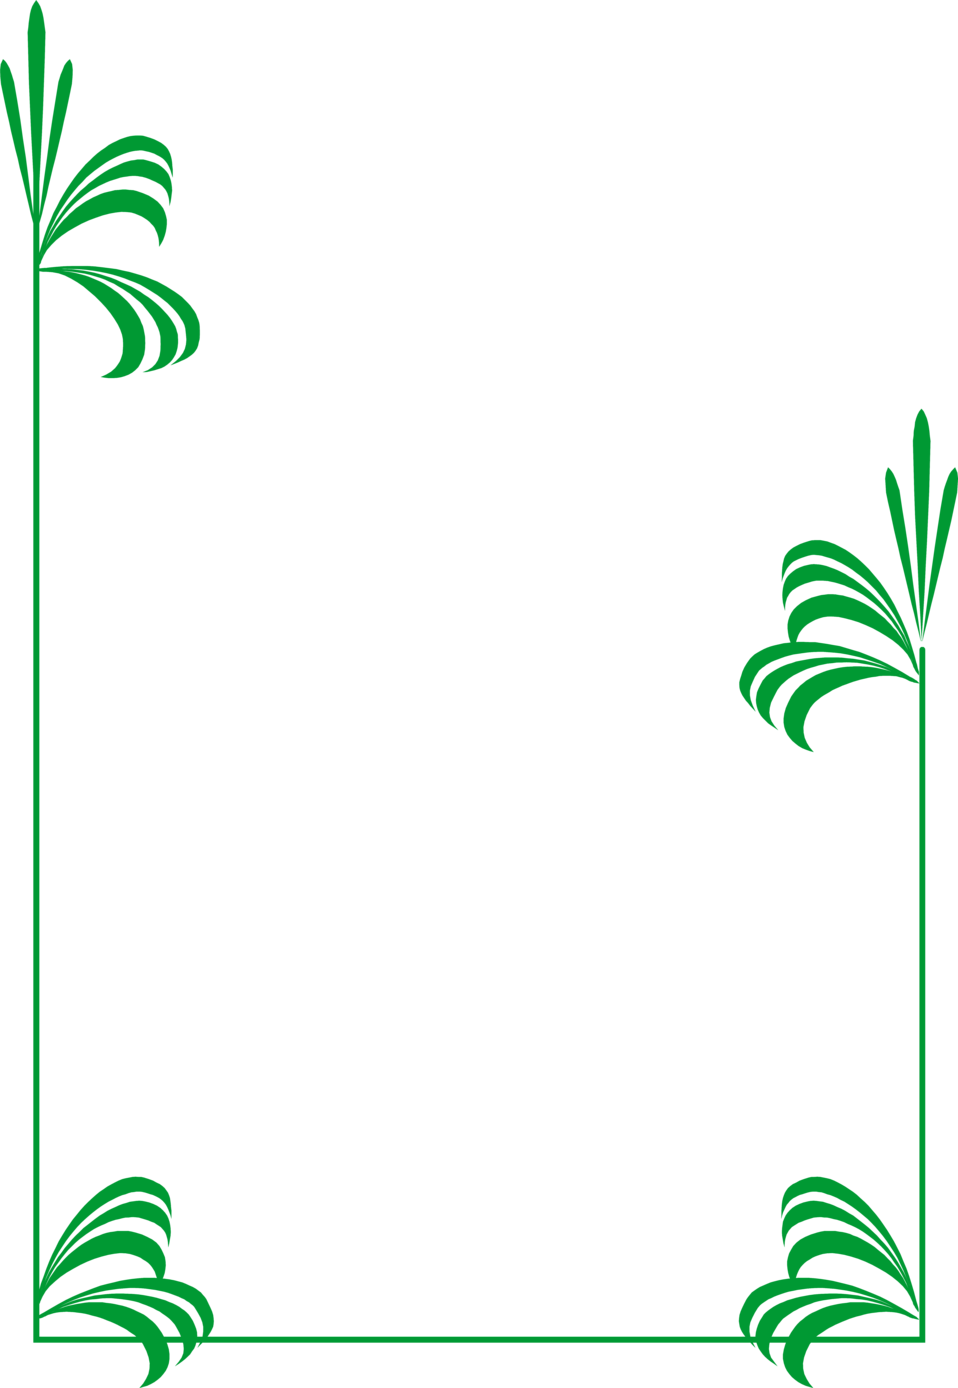 Illustration of a blank frame border with green leaves : Free Stock Photo